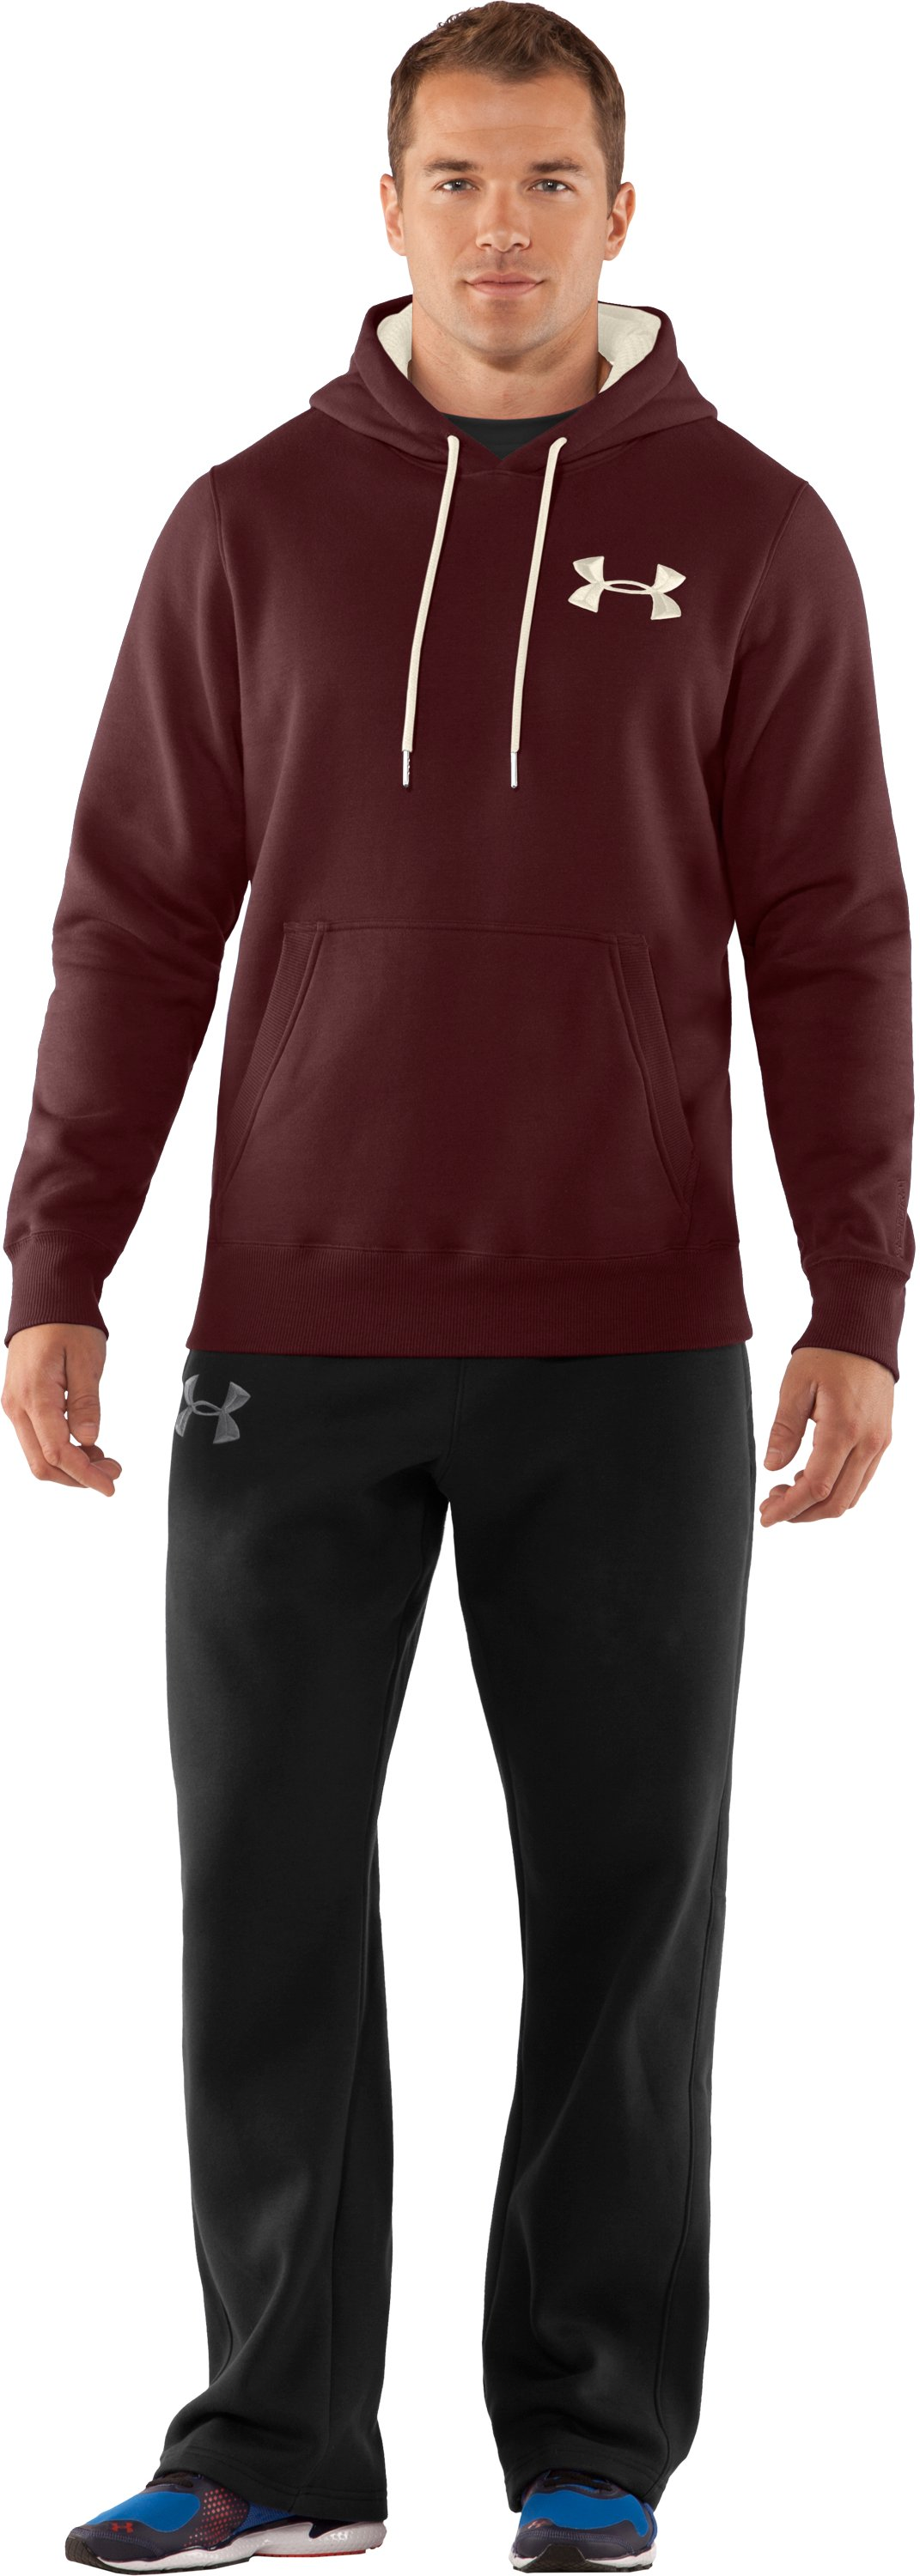 Men's Charged Cotton® Storm Pullover Hoodie, Ox Blood, Front